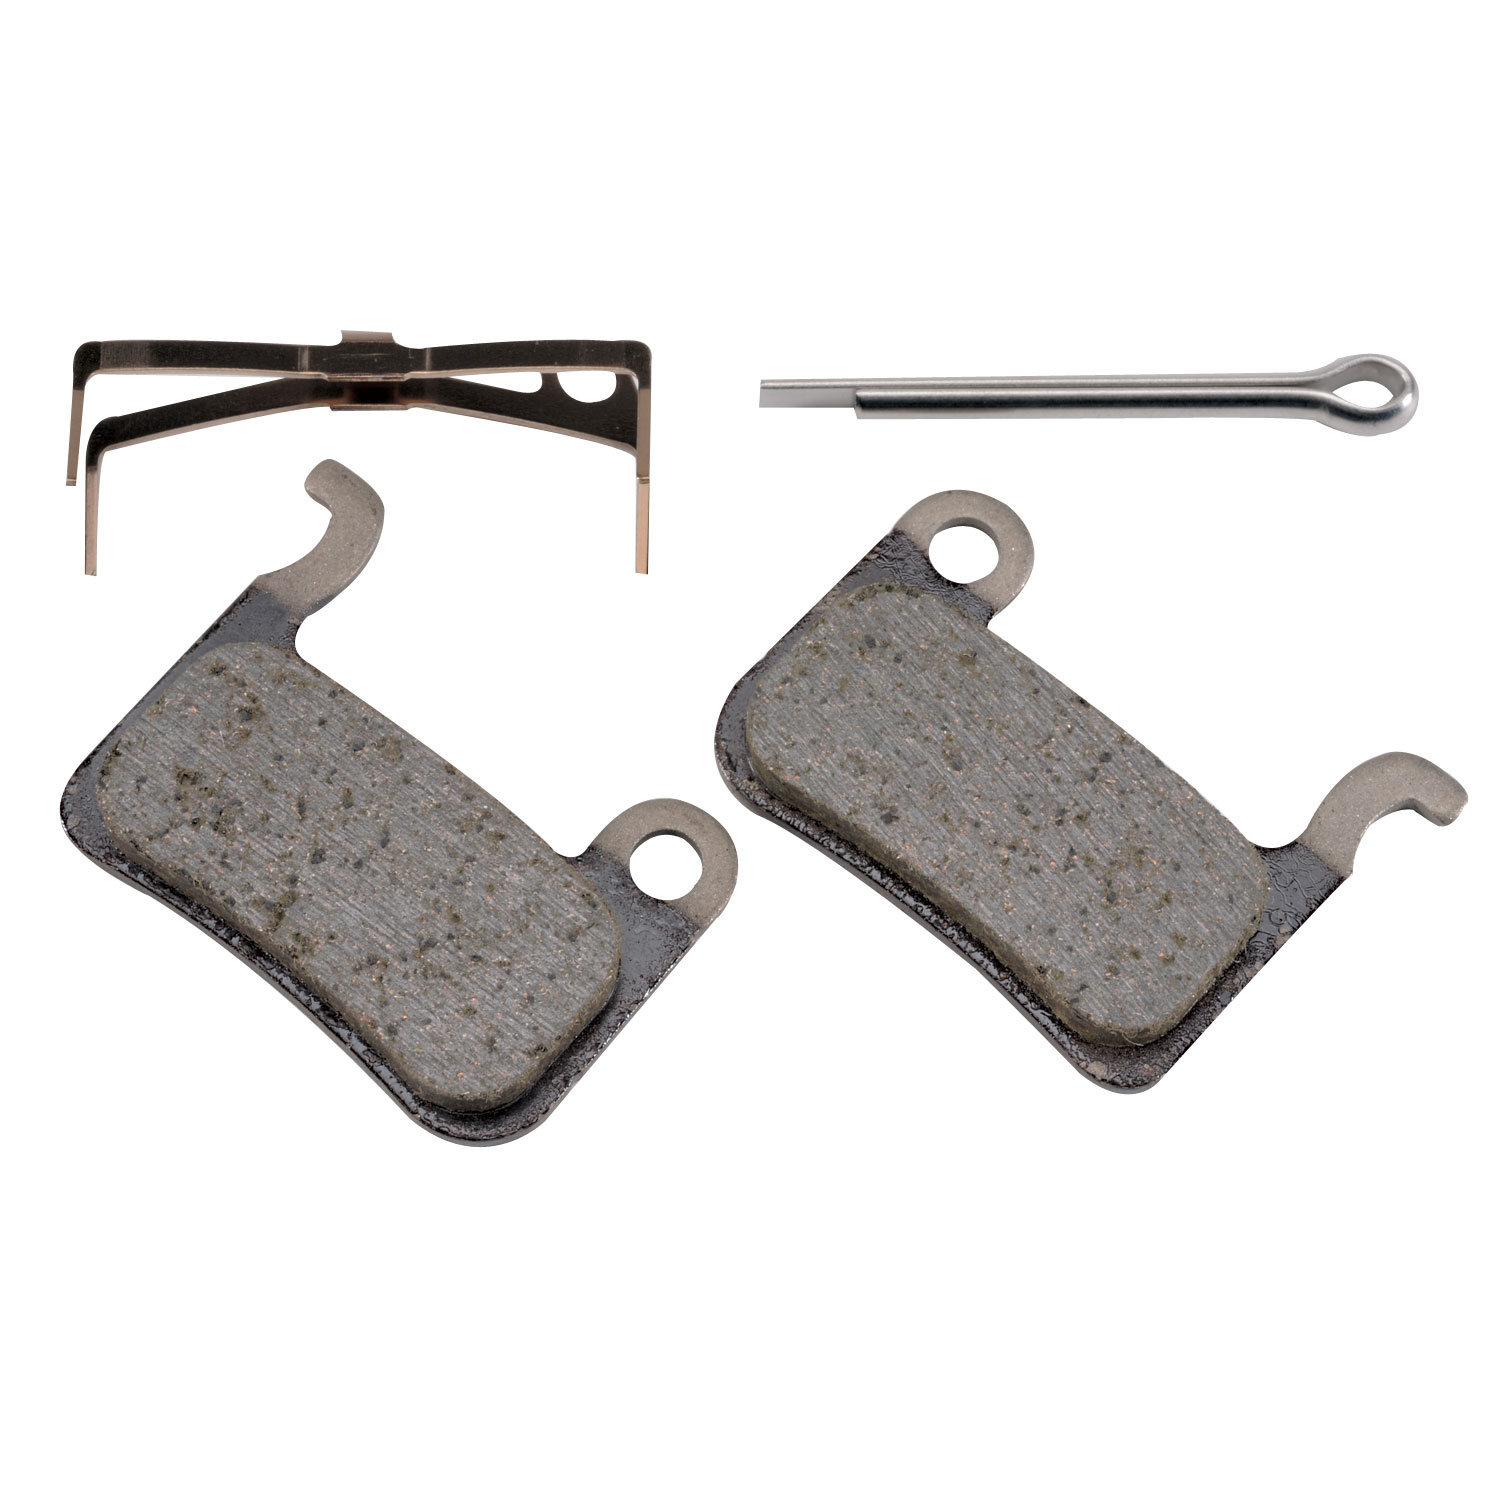 Shimano M07Ti BR-M975 Resin disc Pads with Spring